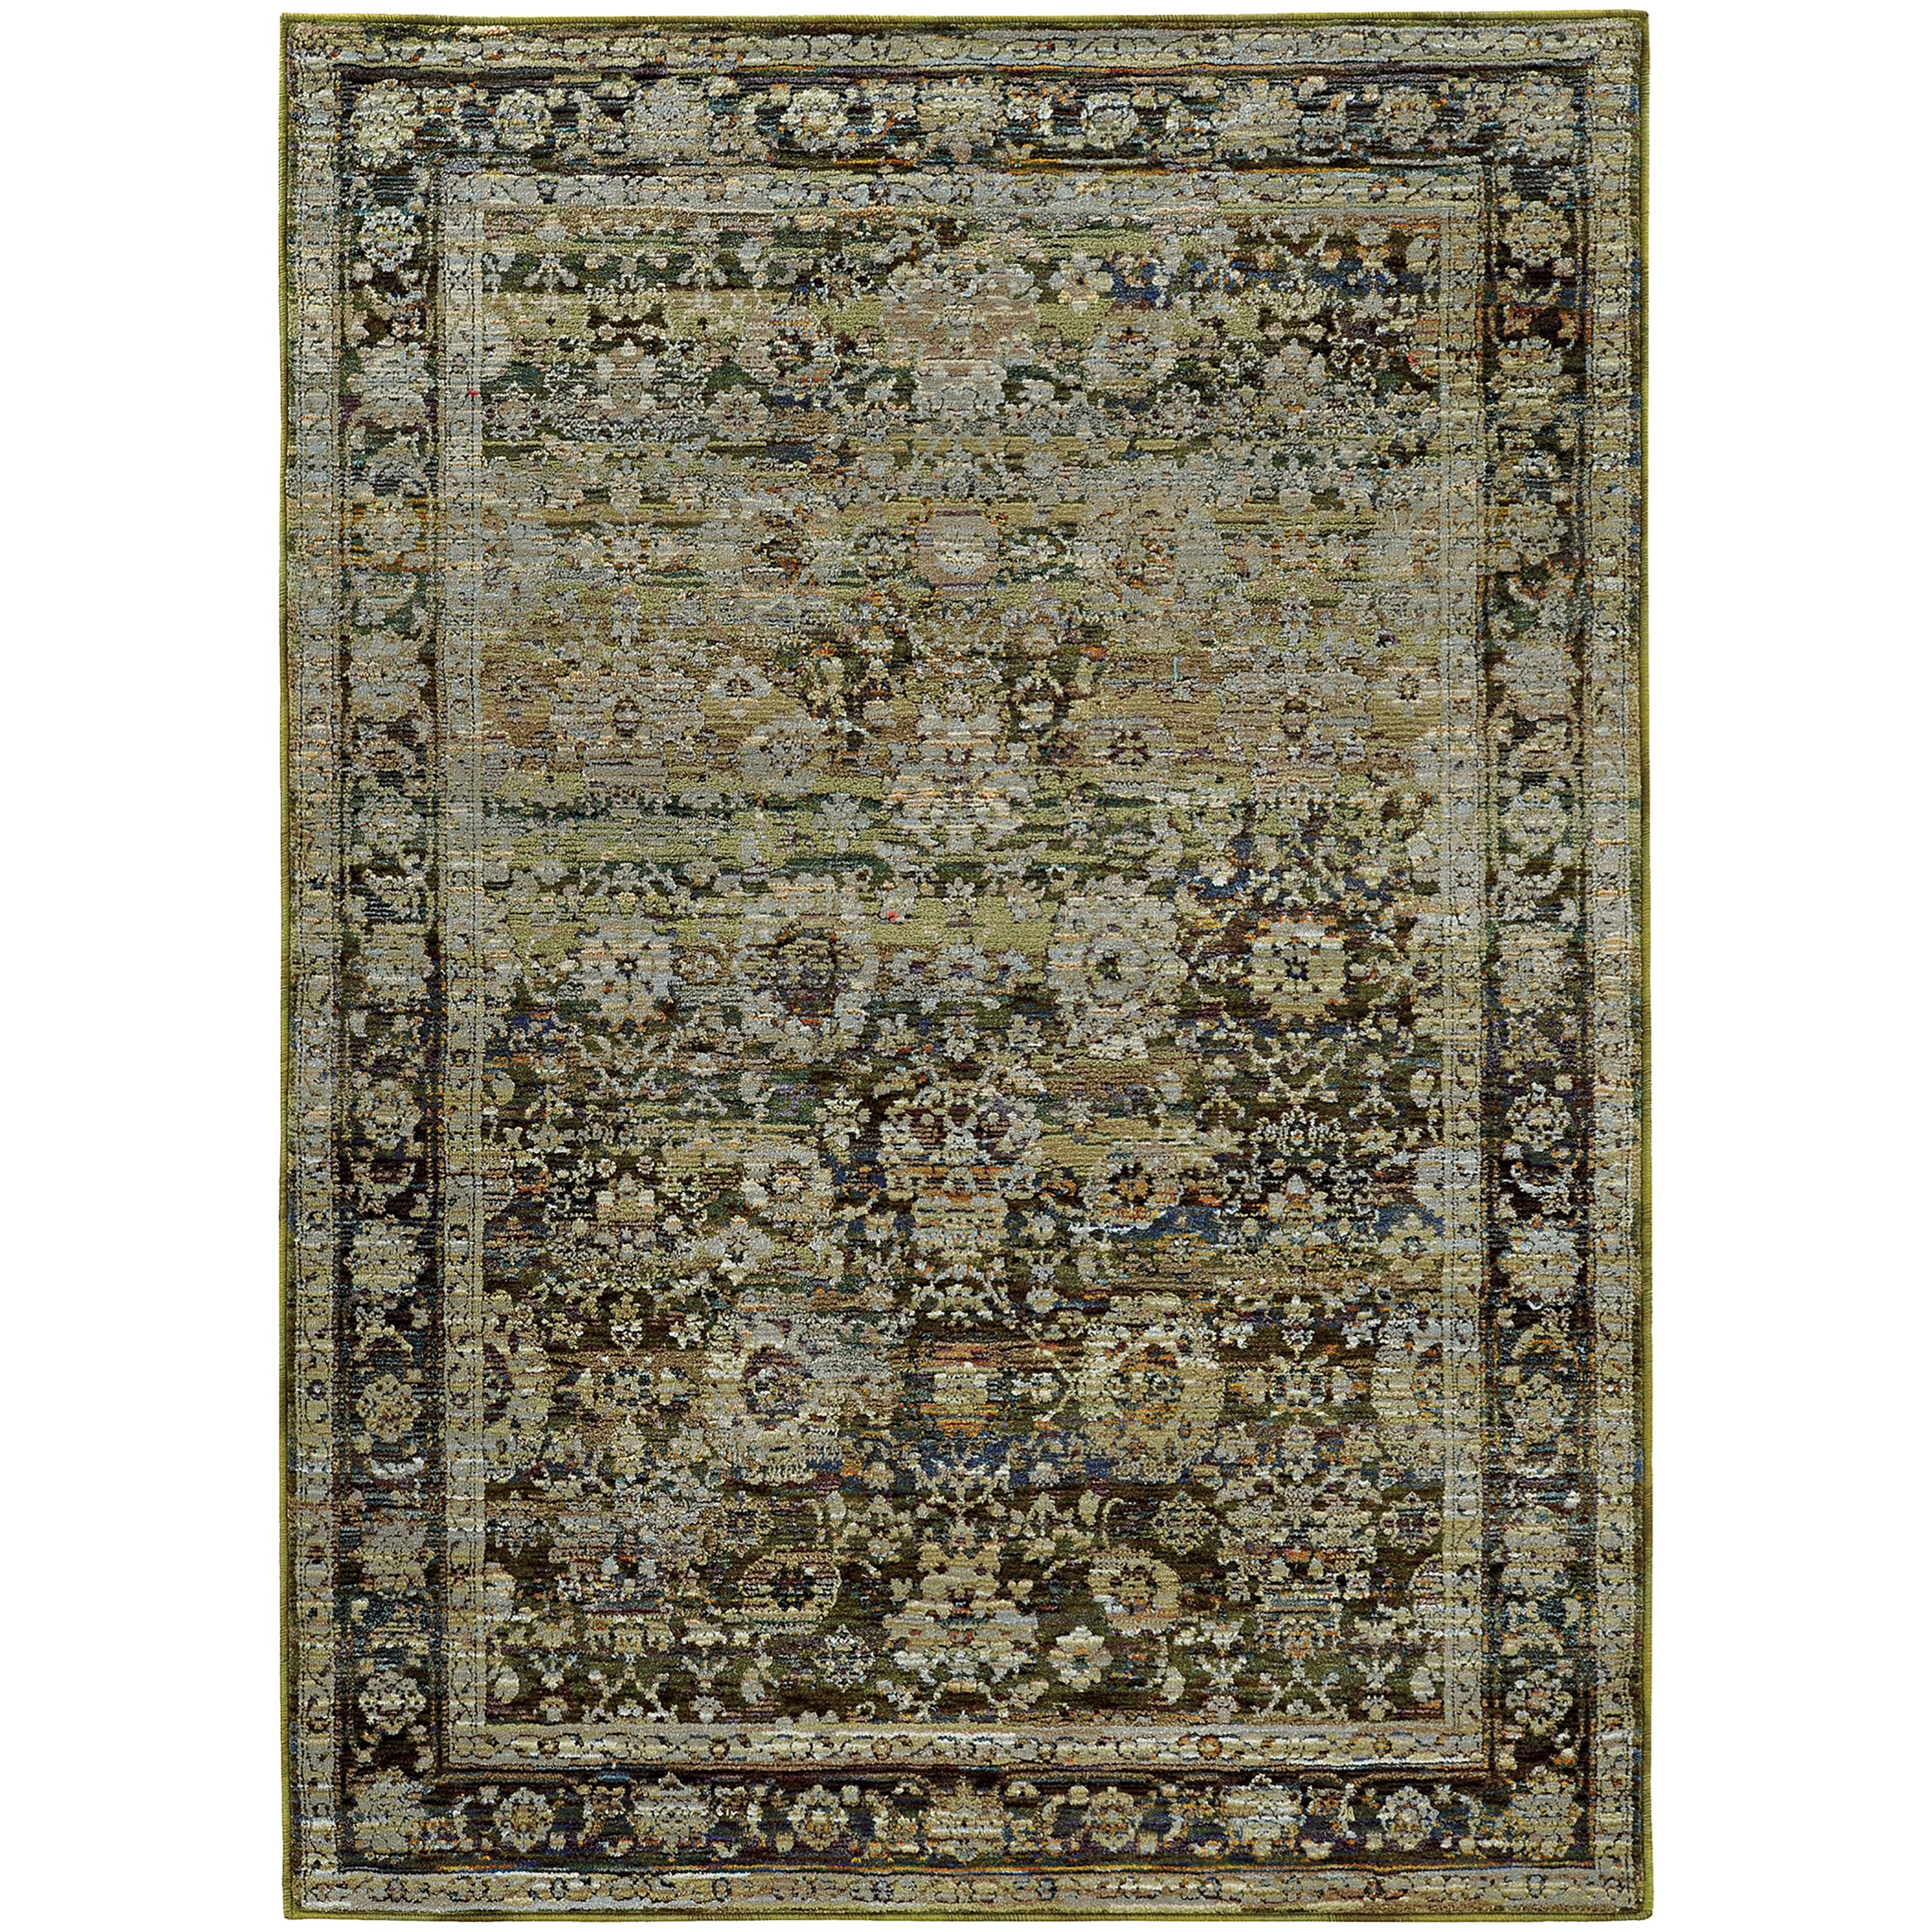 """Andorra 7'10"""" X 10'10"""" Casual Green/ Brown Rectangle by Oriental Weavers at Steger's Furniture"""